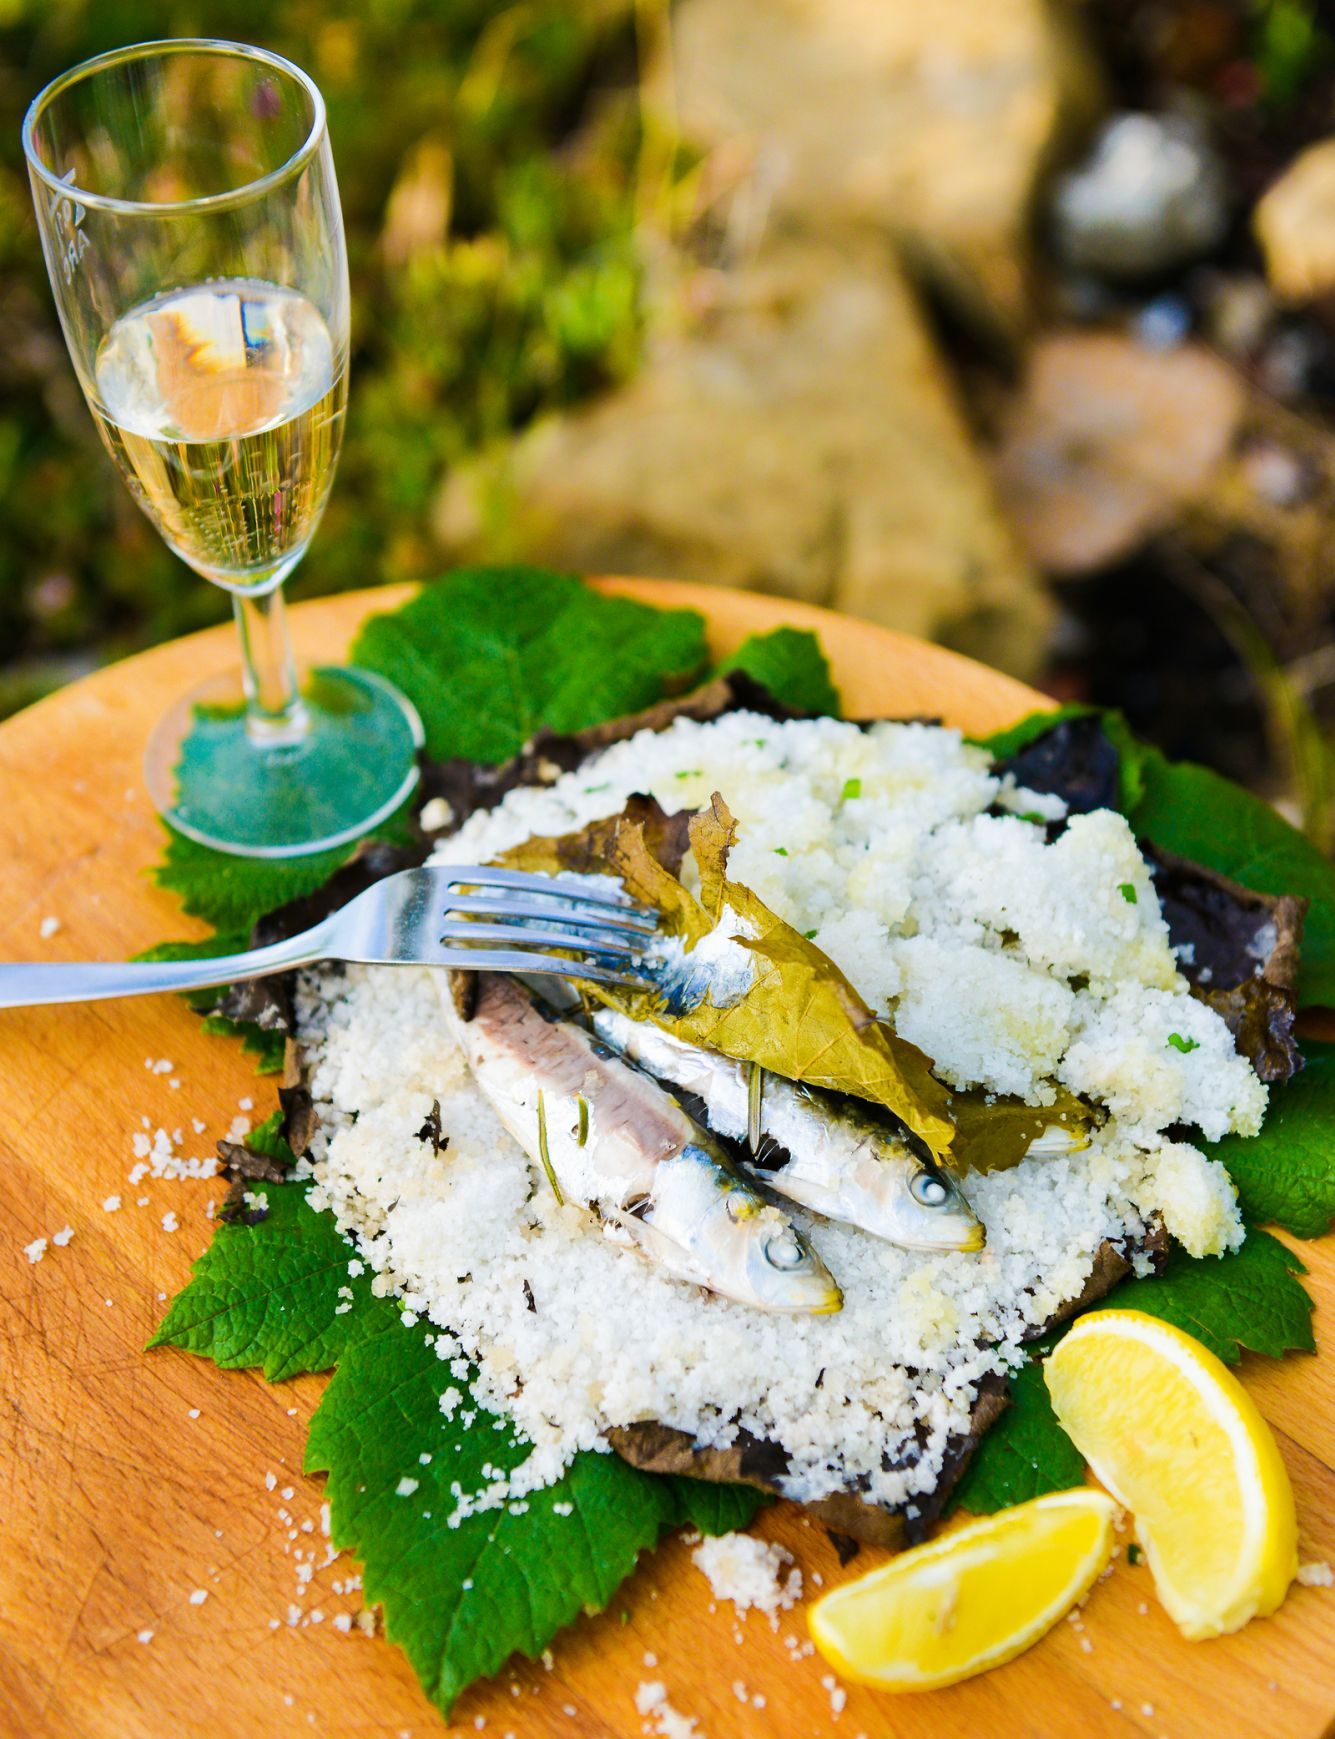 Food presentation of fish served with lemon and a glass of white sparkling wine